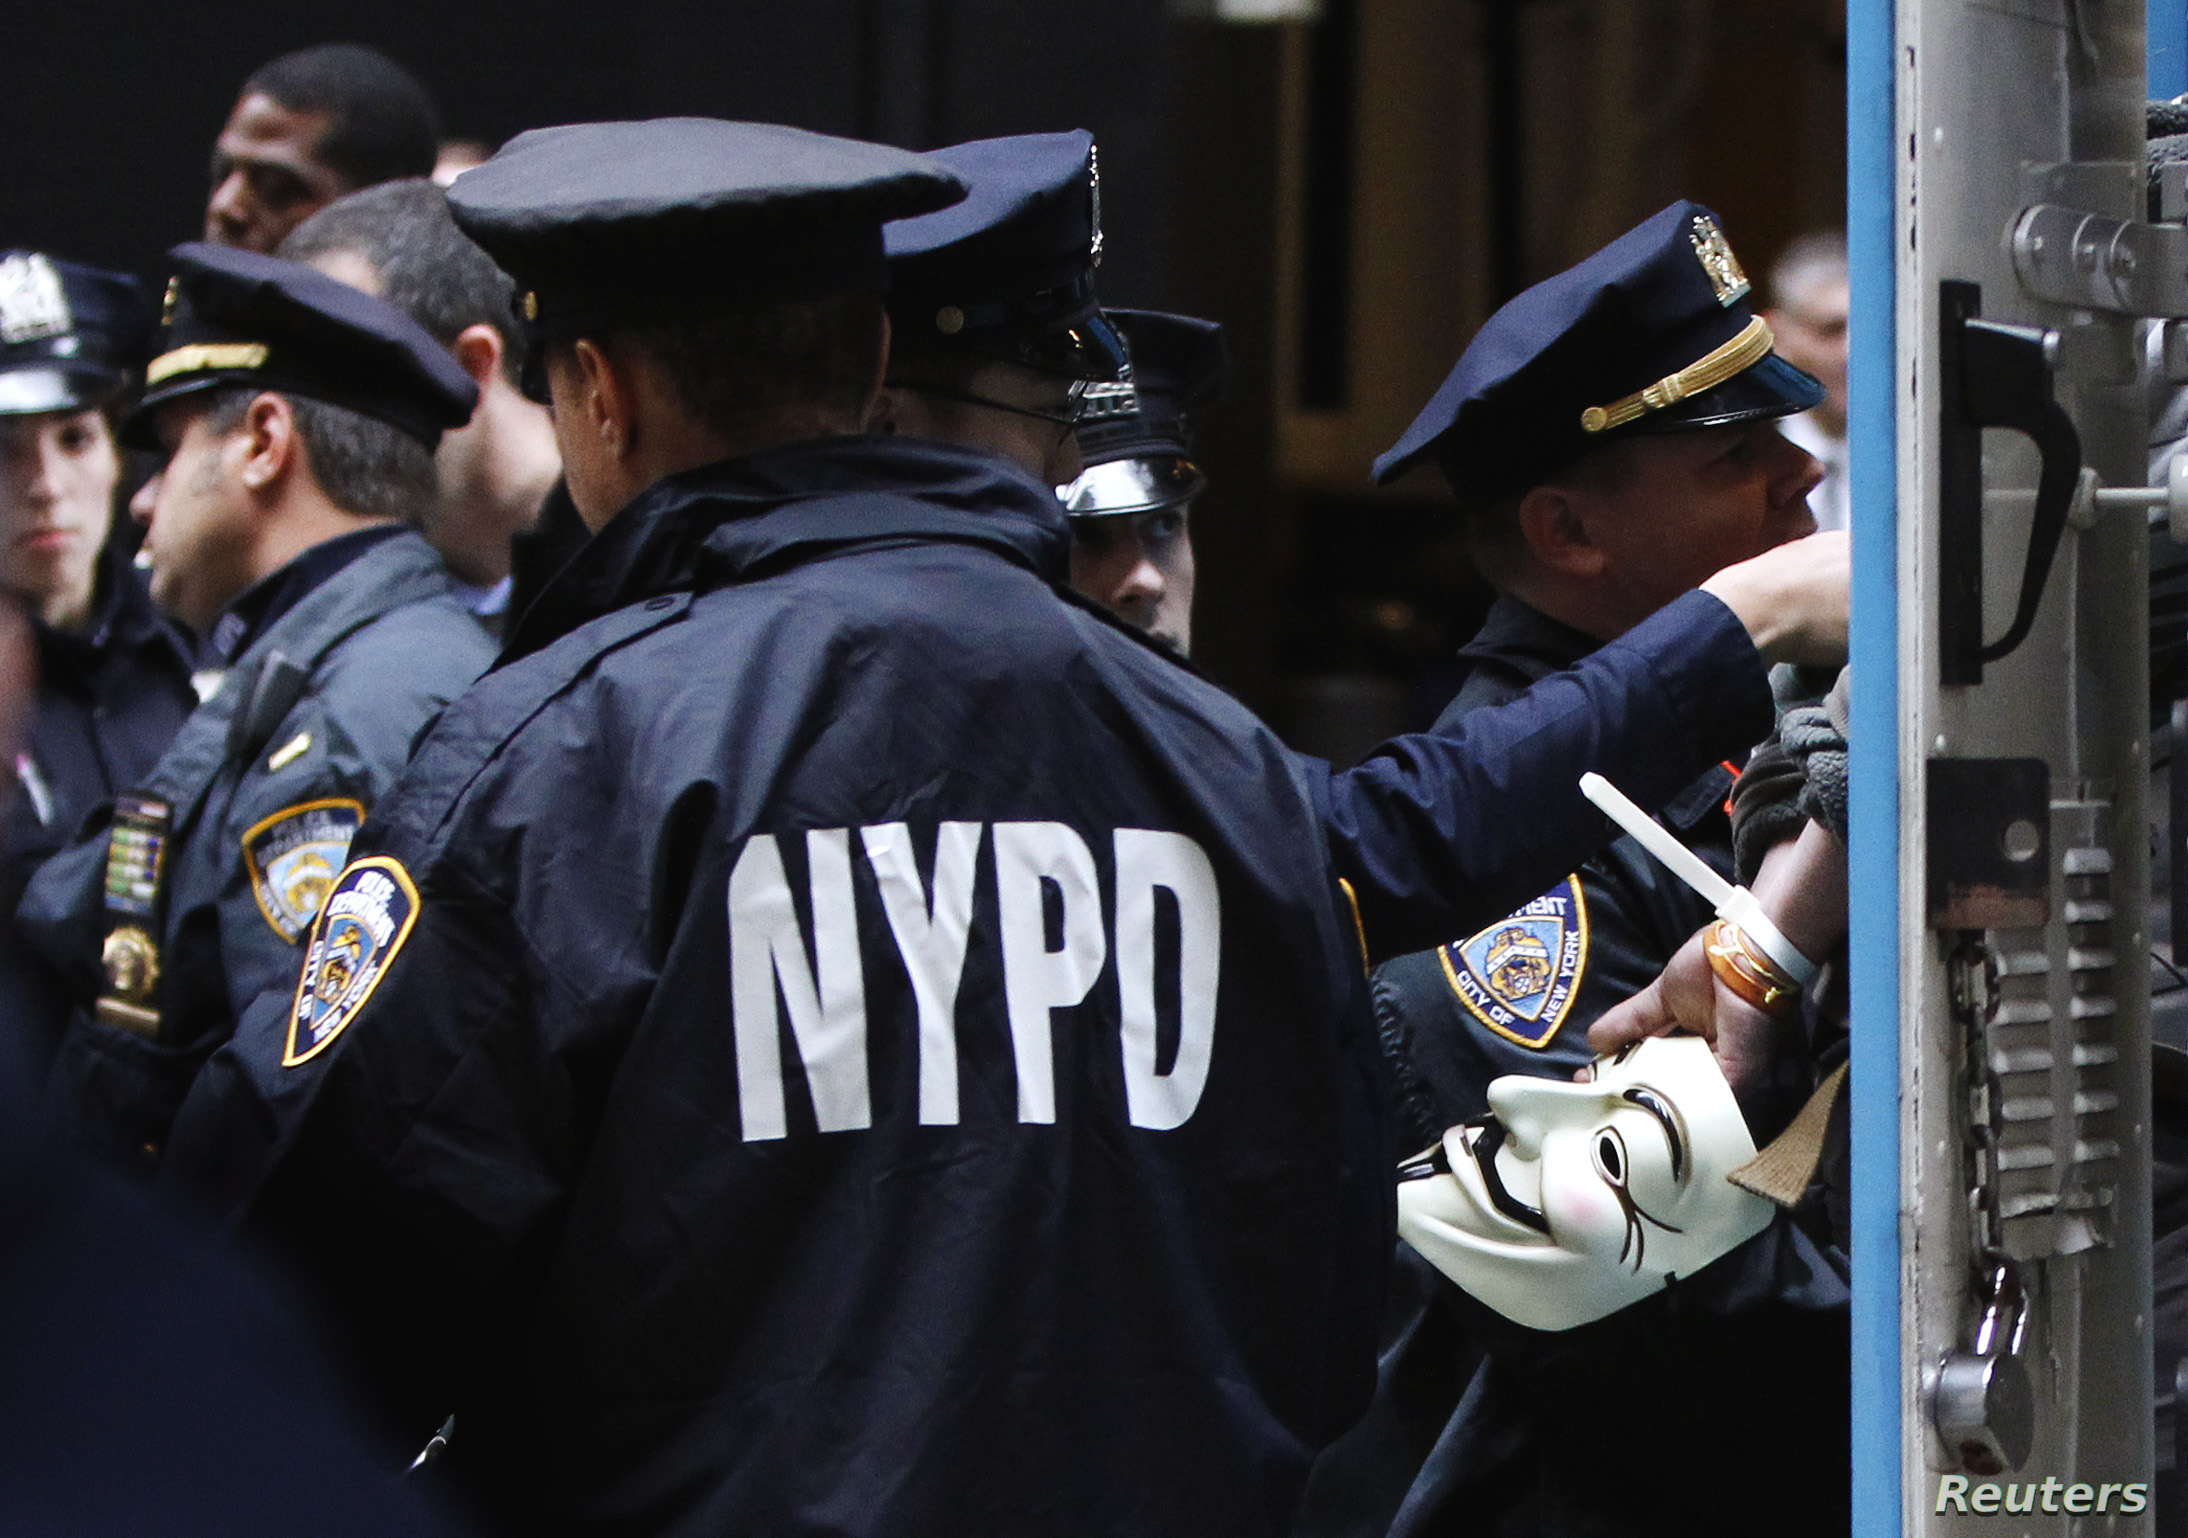 FILE - New York Police Department (NYPD) officers are seen on hand during a protest.